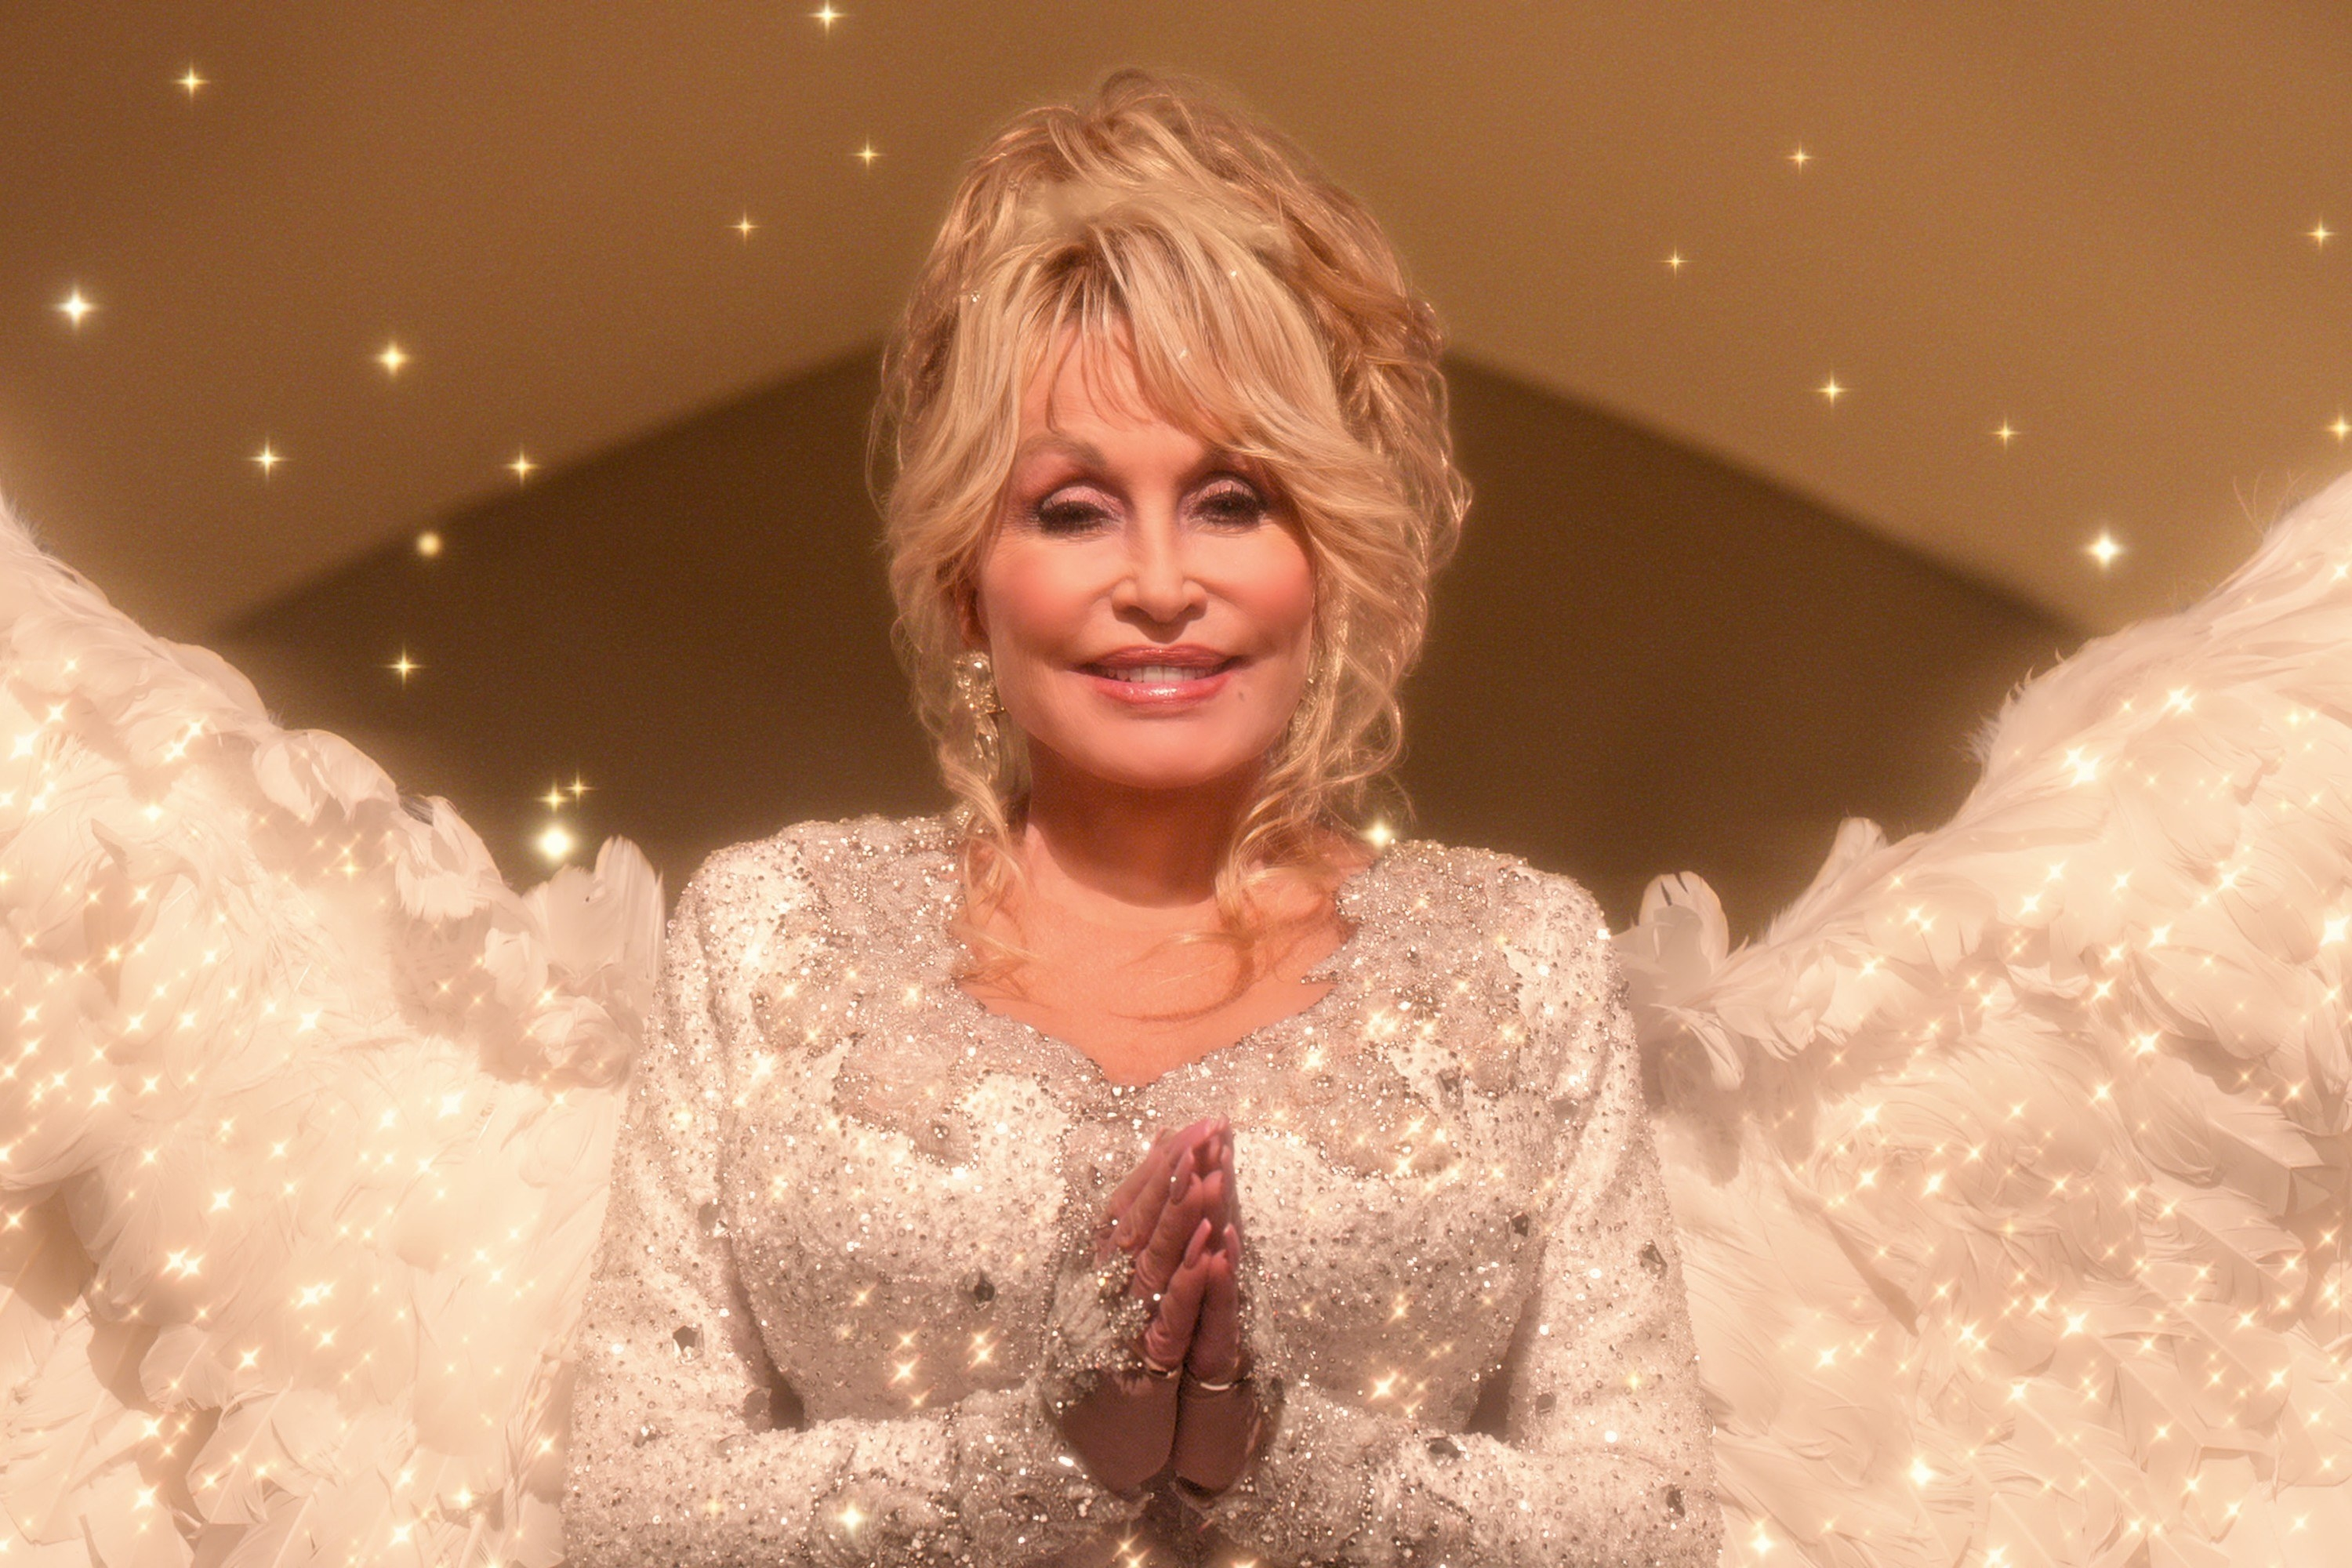 Dolly Parton dressed as an angel for Christmas on the Square